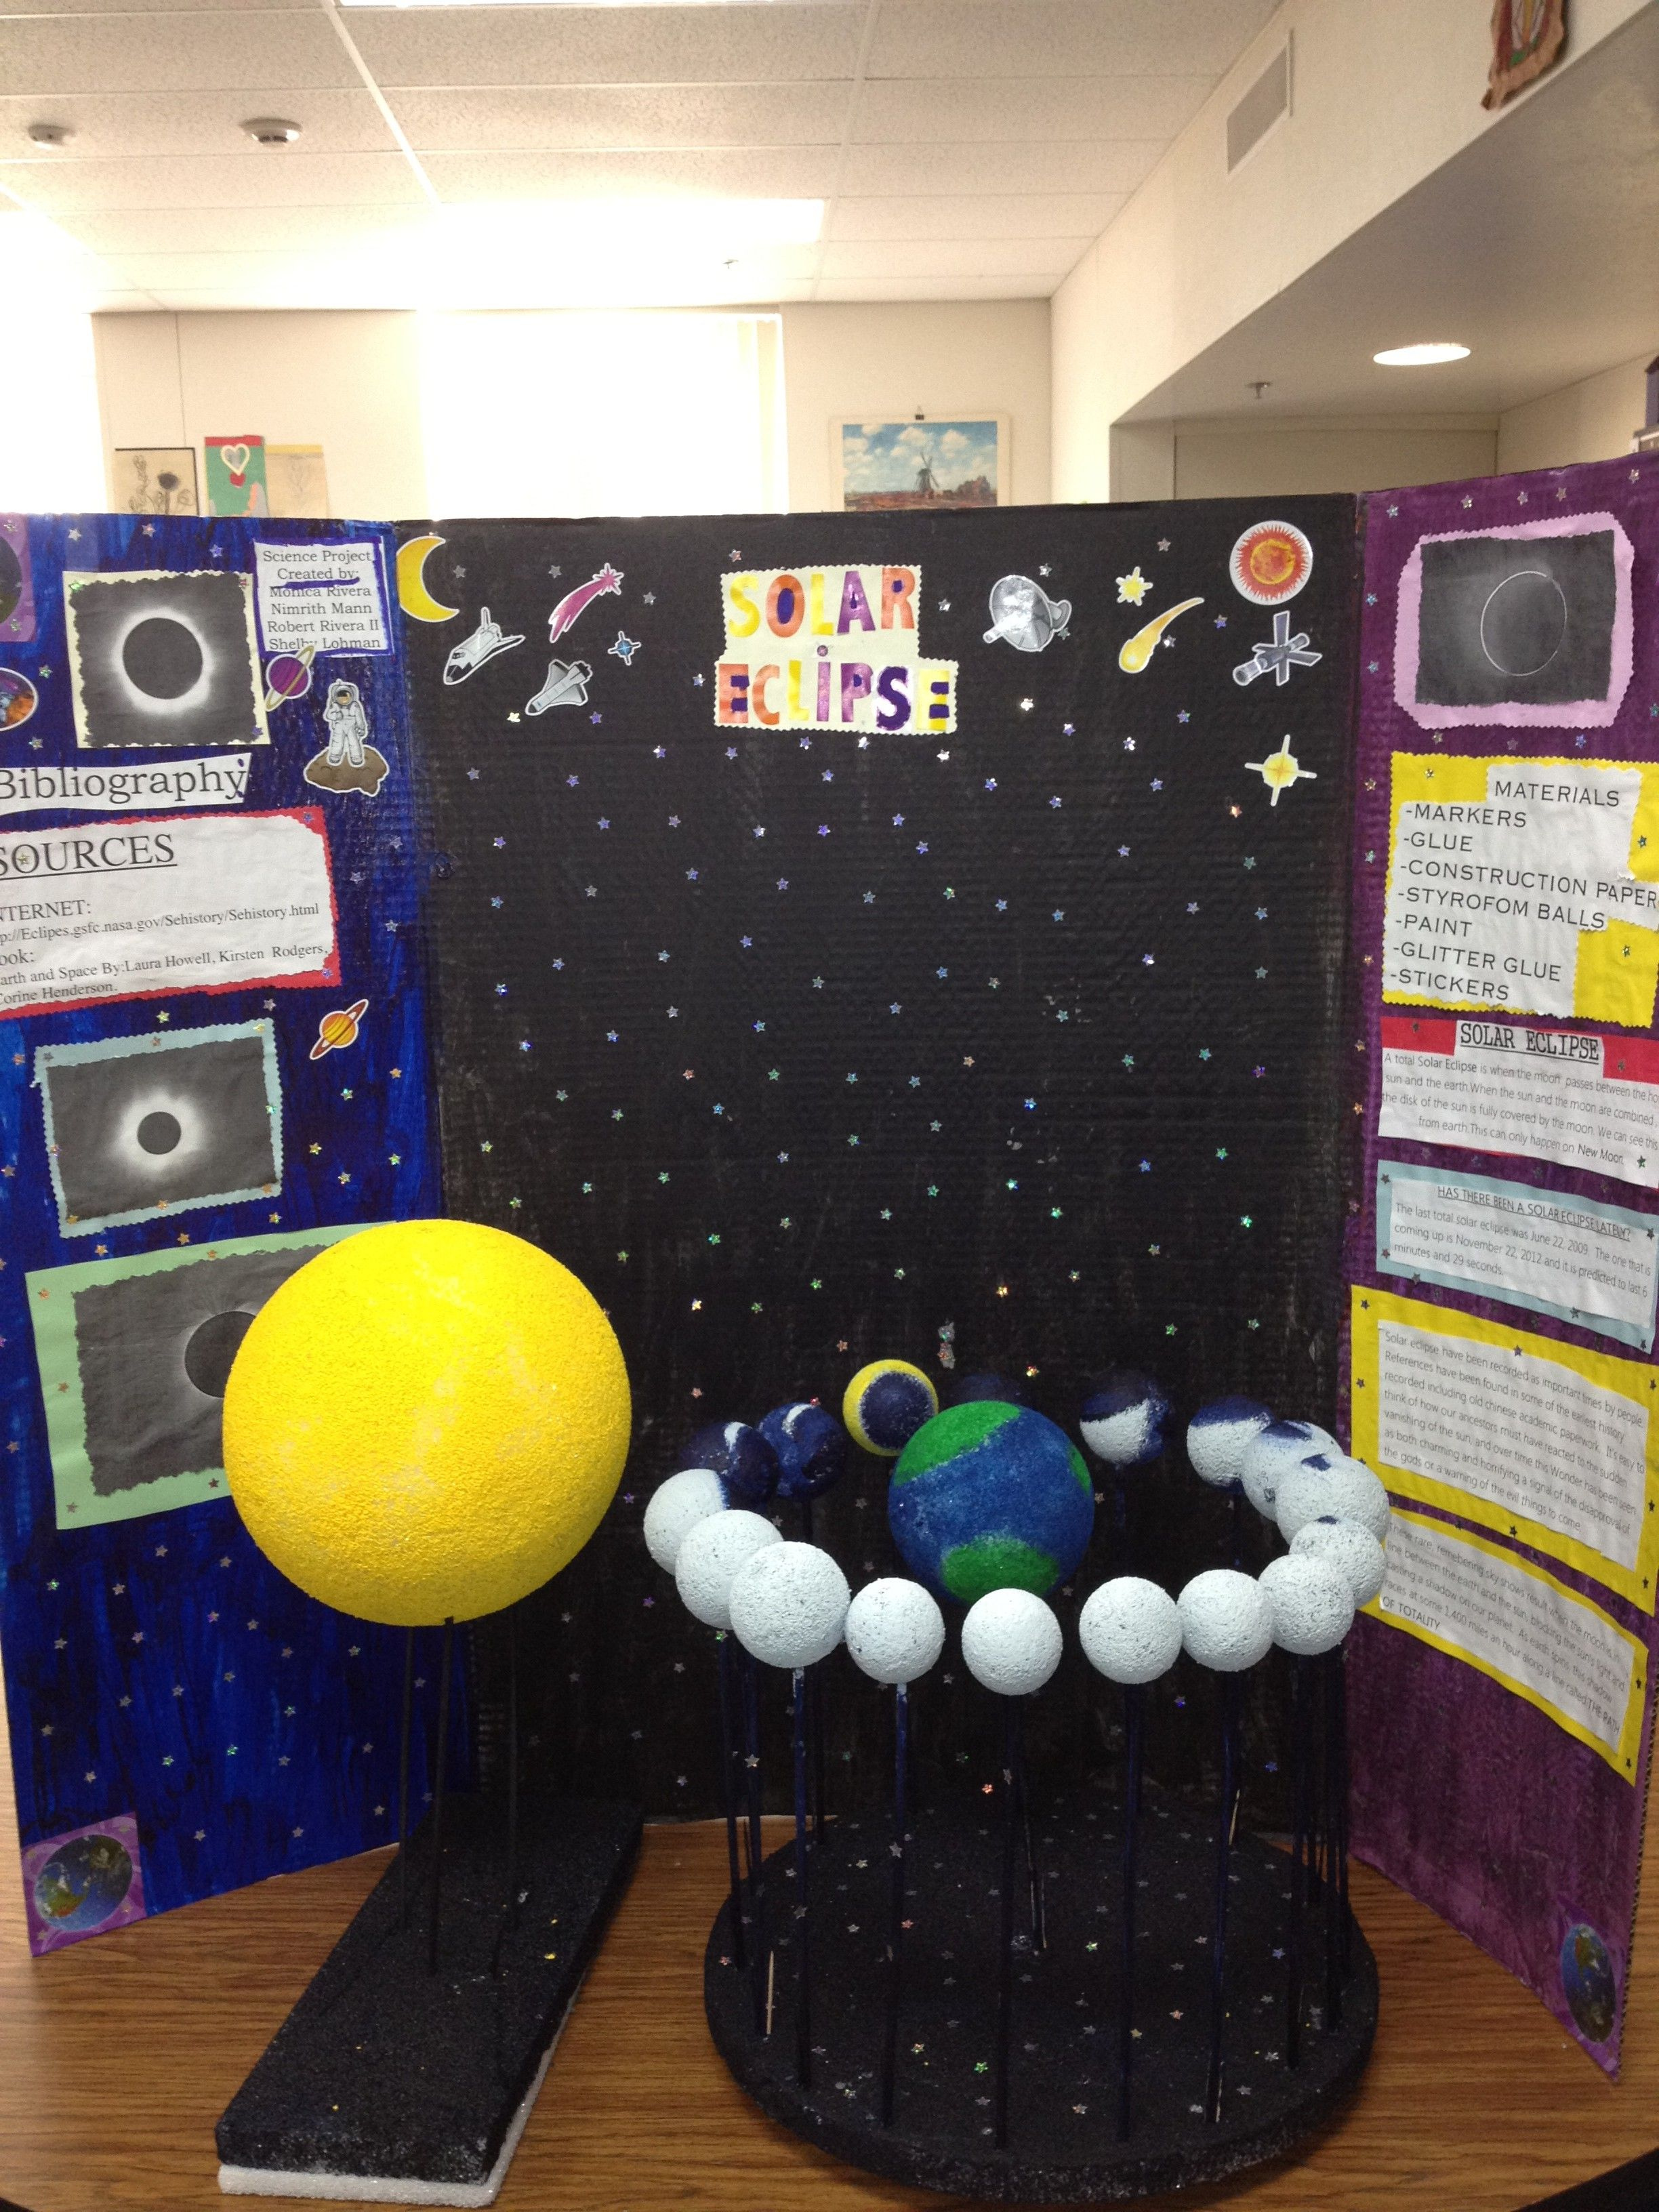 Pin By Atieknya Agung On Eclipse Project Science Projects Science